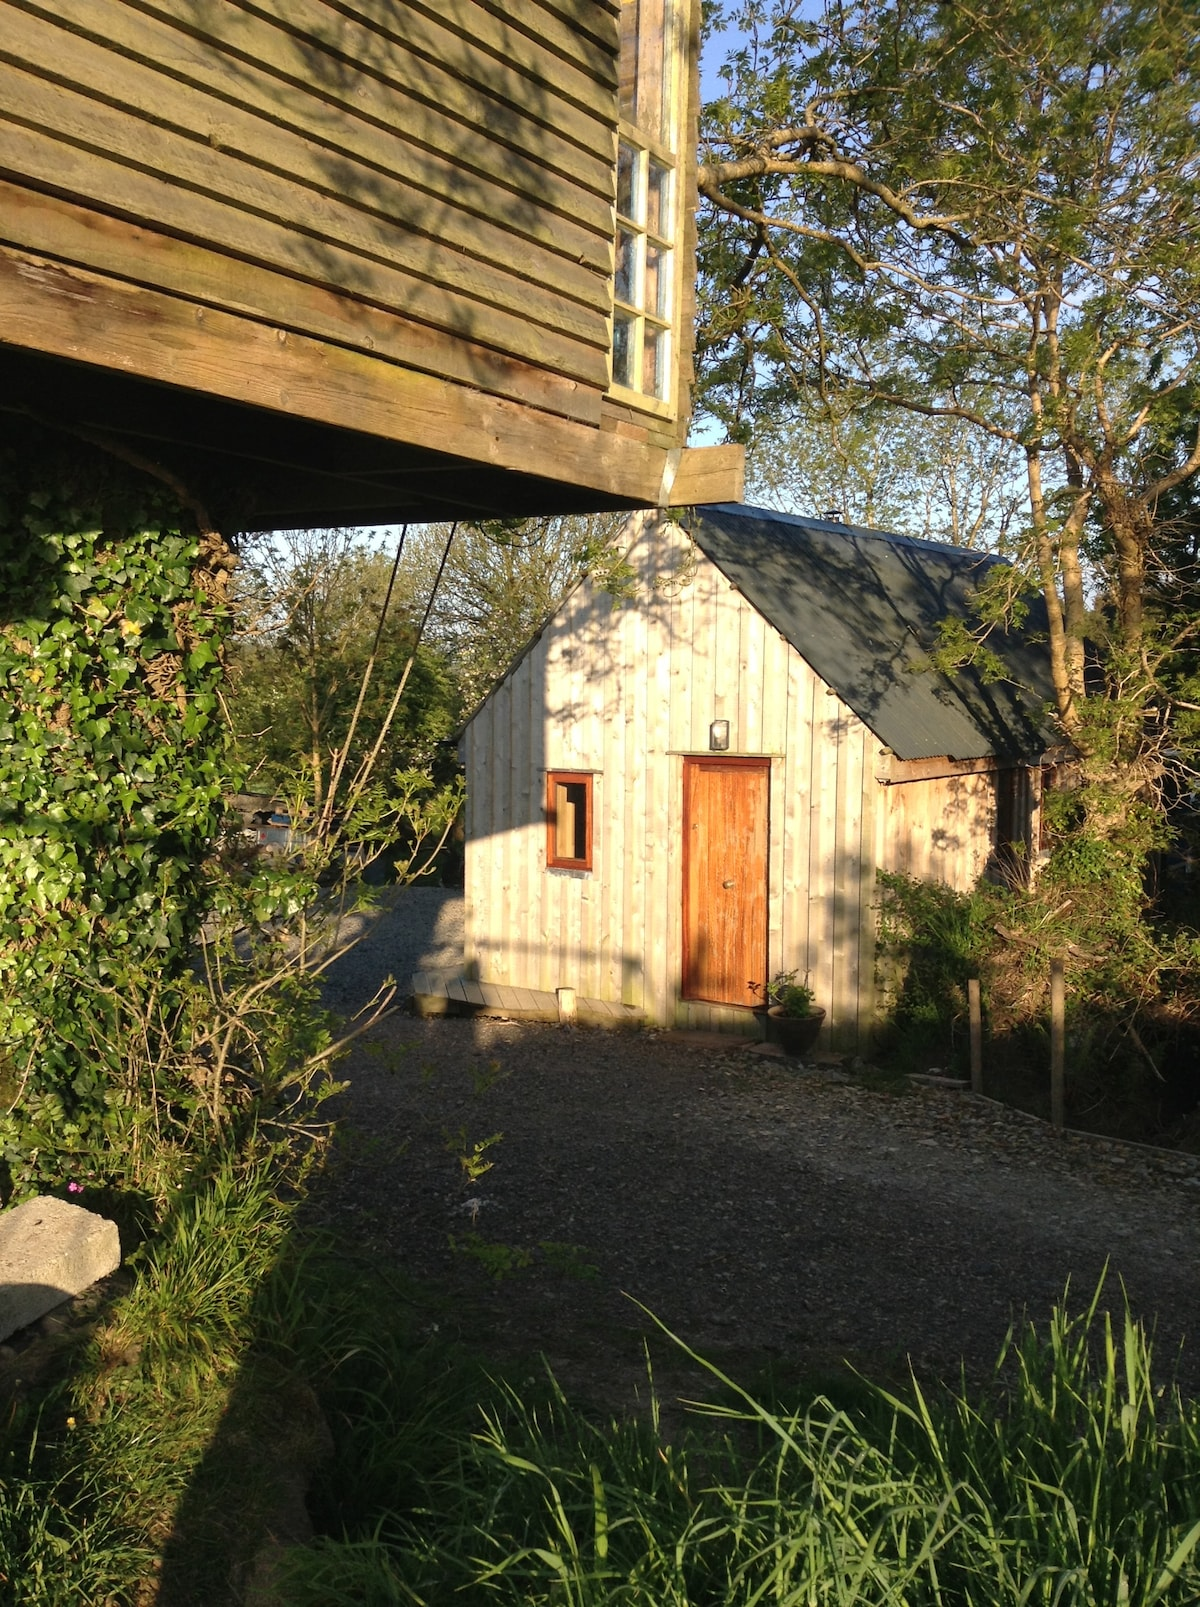 Badgers Hill Chalet, morning sun shines off the cedar-wood finish. treehouse in foreground.